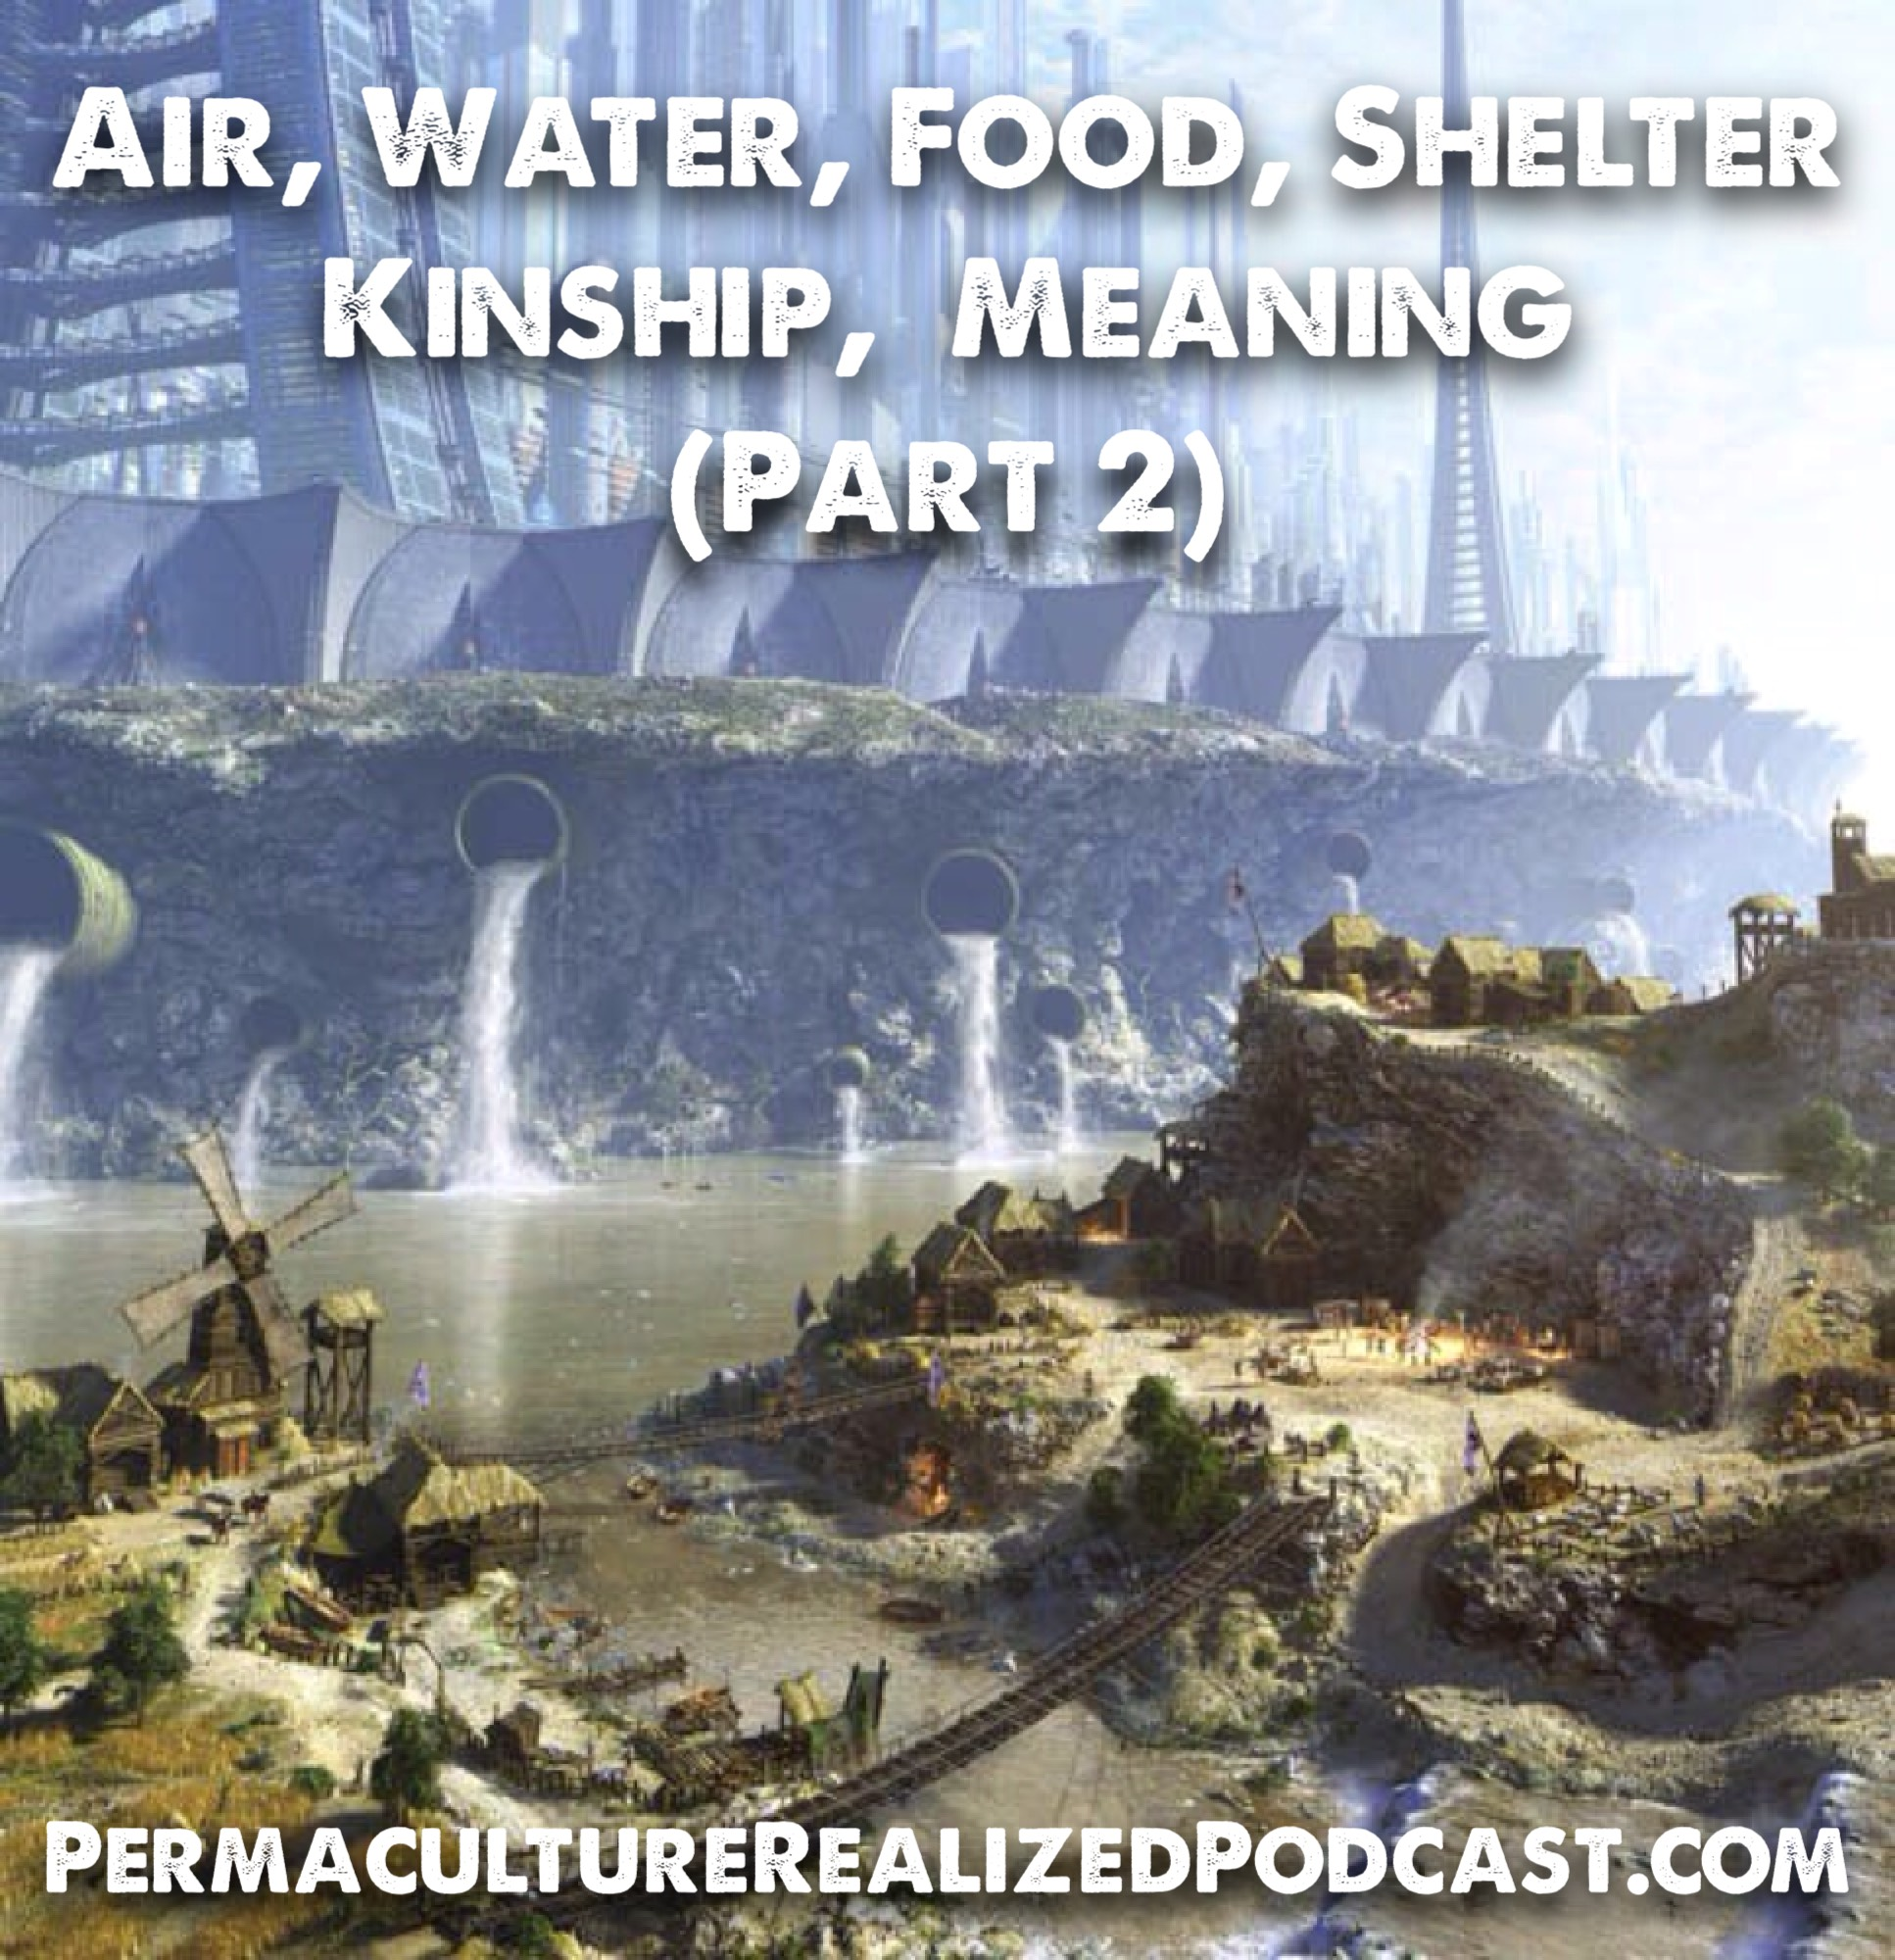 Permaculture Realized Podcast Episode 30, Air, Water, Food, Shelter, Kinship, Meaning (Part 2)